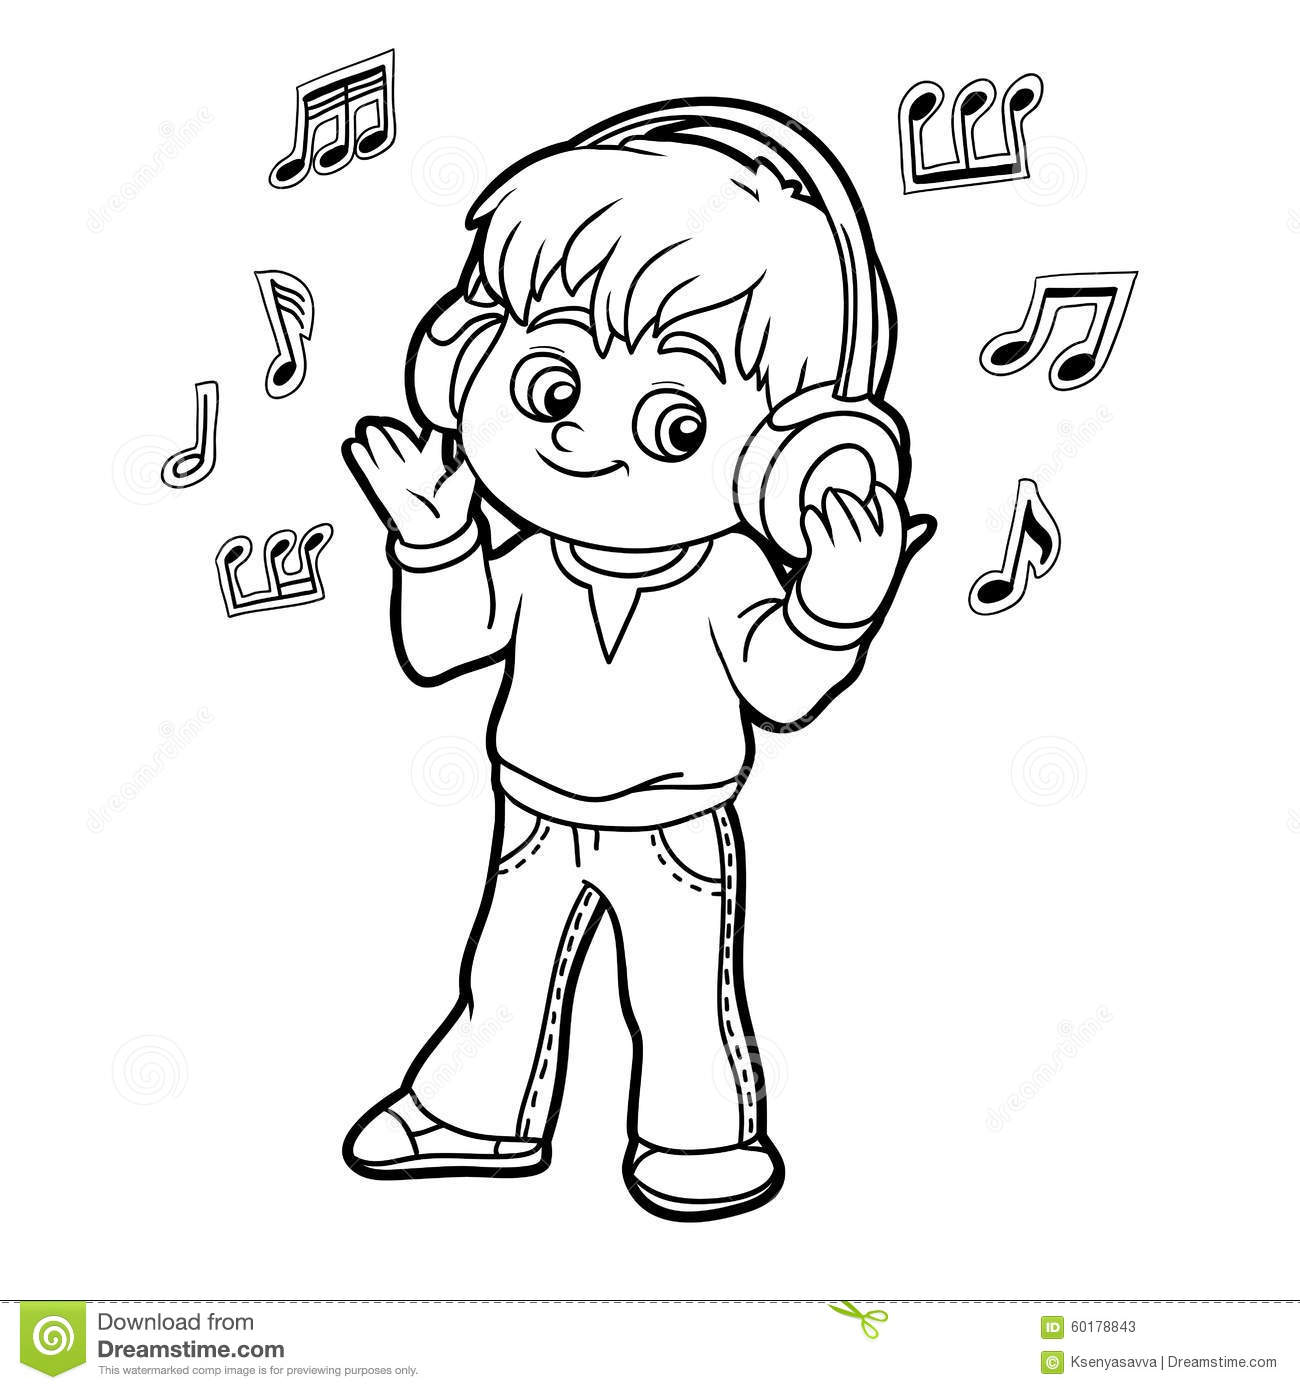 Listening to music clipart black and white 1 » Clipart Station